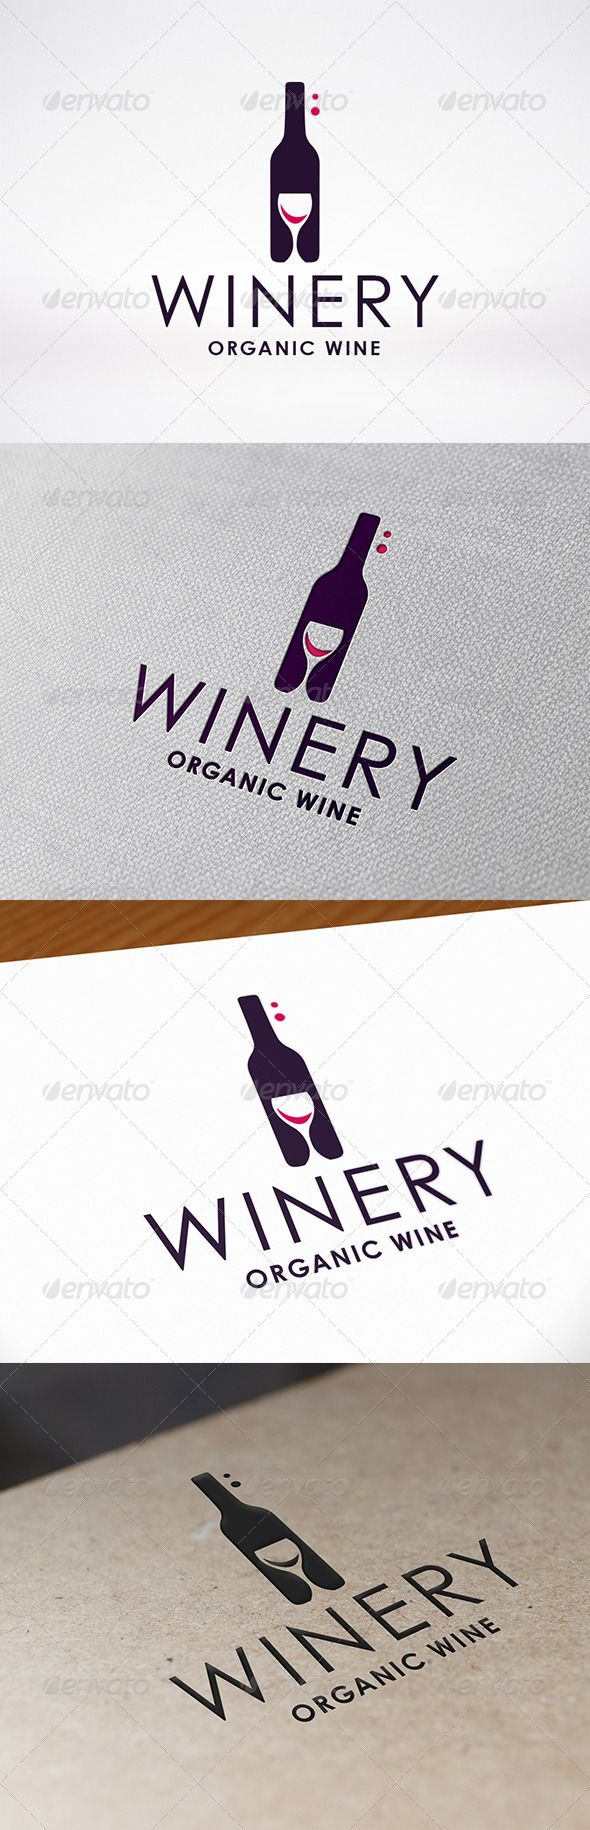 Winery Logo Design Template Vector #logotype Download it here: http://graphicriver.net/item/winery-logo-template/7521764?s_rank=336?ref=nexion